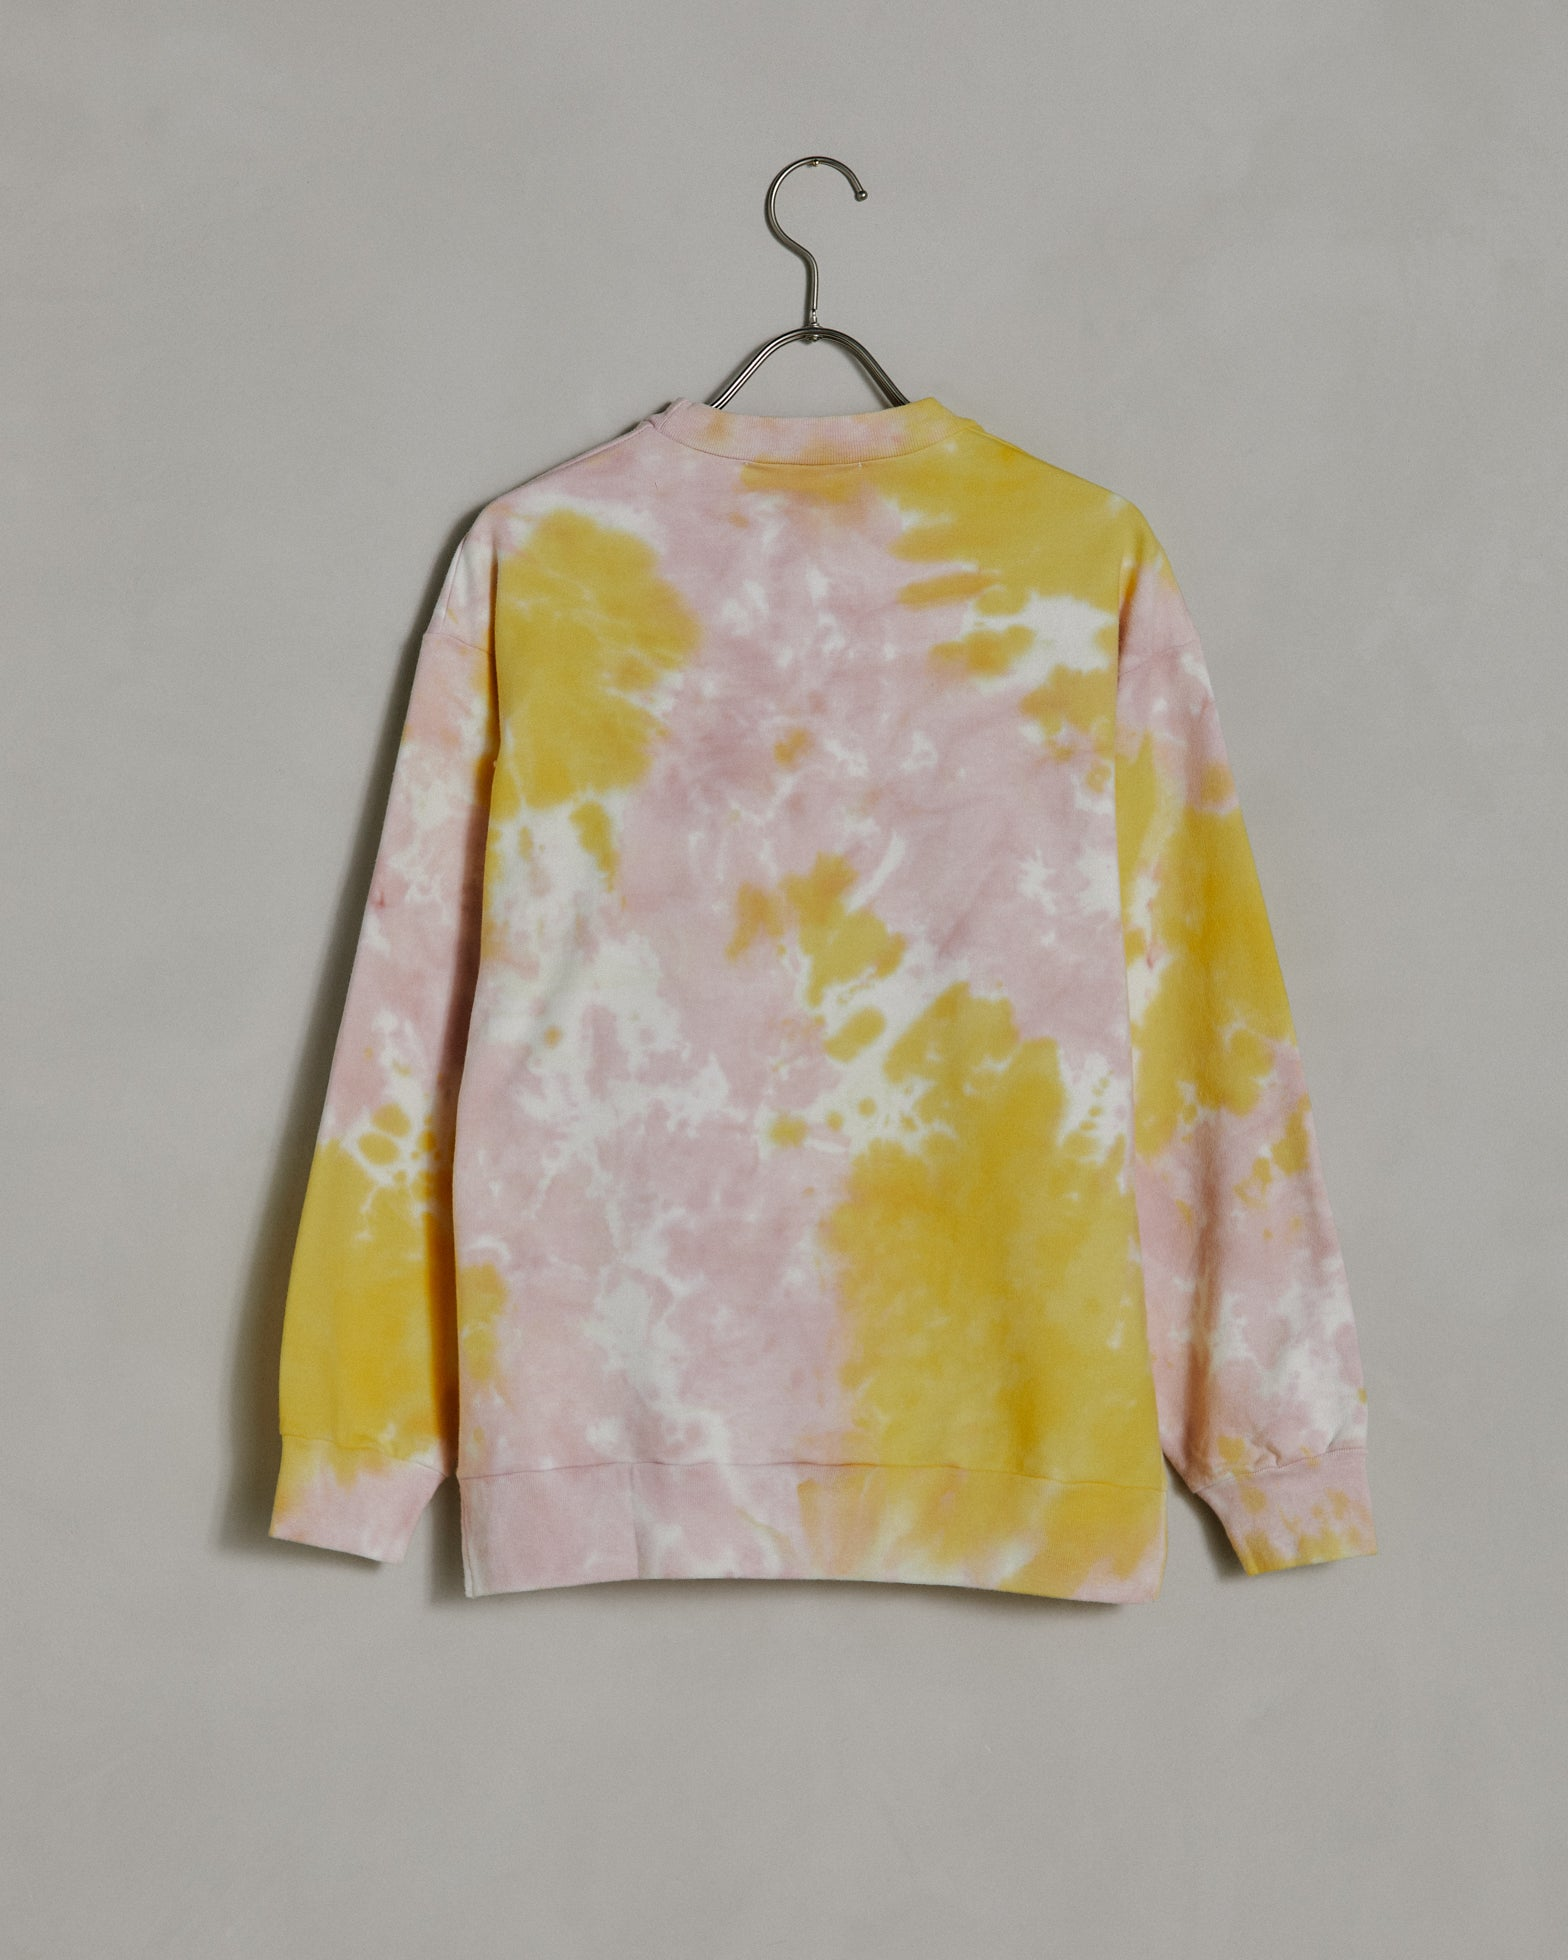 Calais Sweatshirt in Yellow Pink Tie-Dye